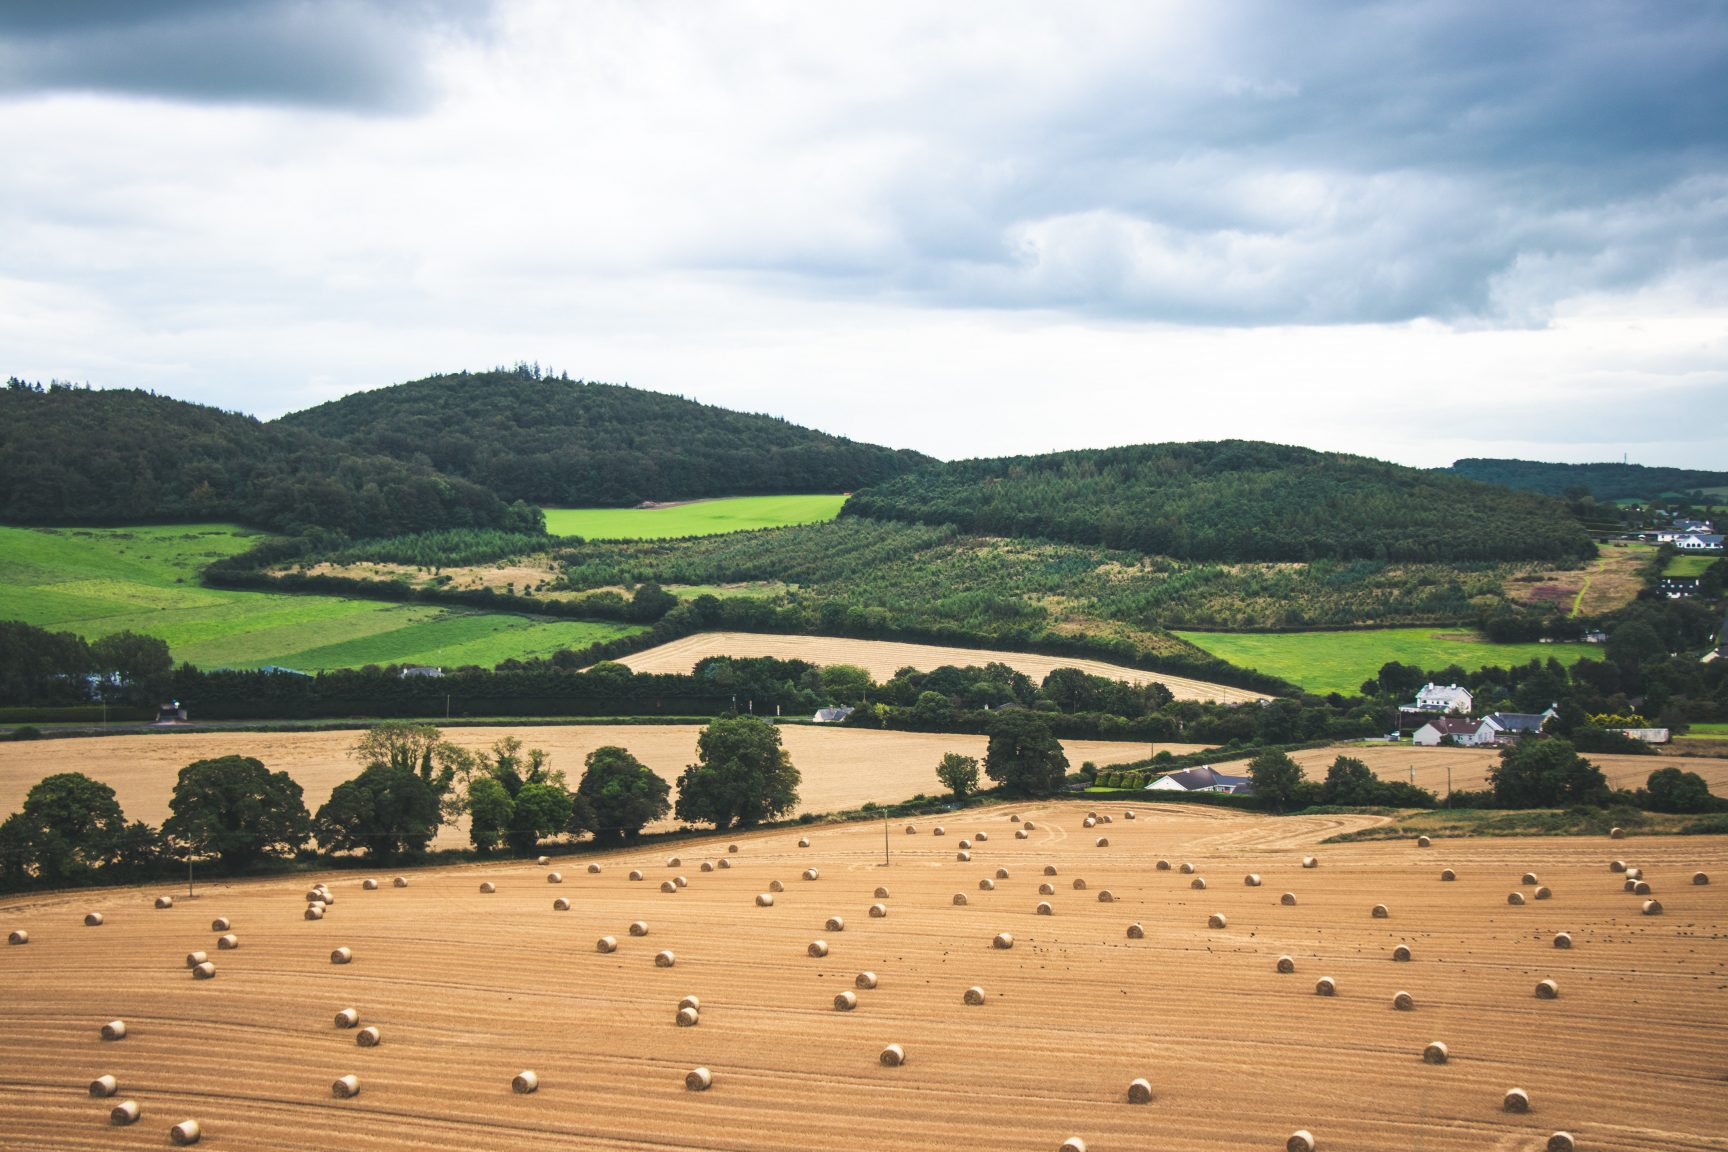 A view of fields. There are hay bails in the closest field, and the others are grassy of filled with trees. There are two houses in the distance.